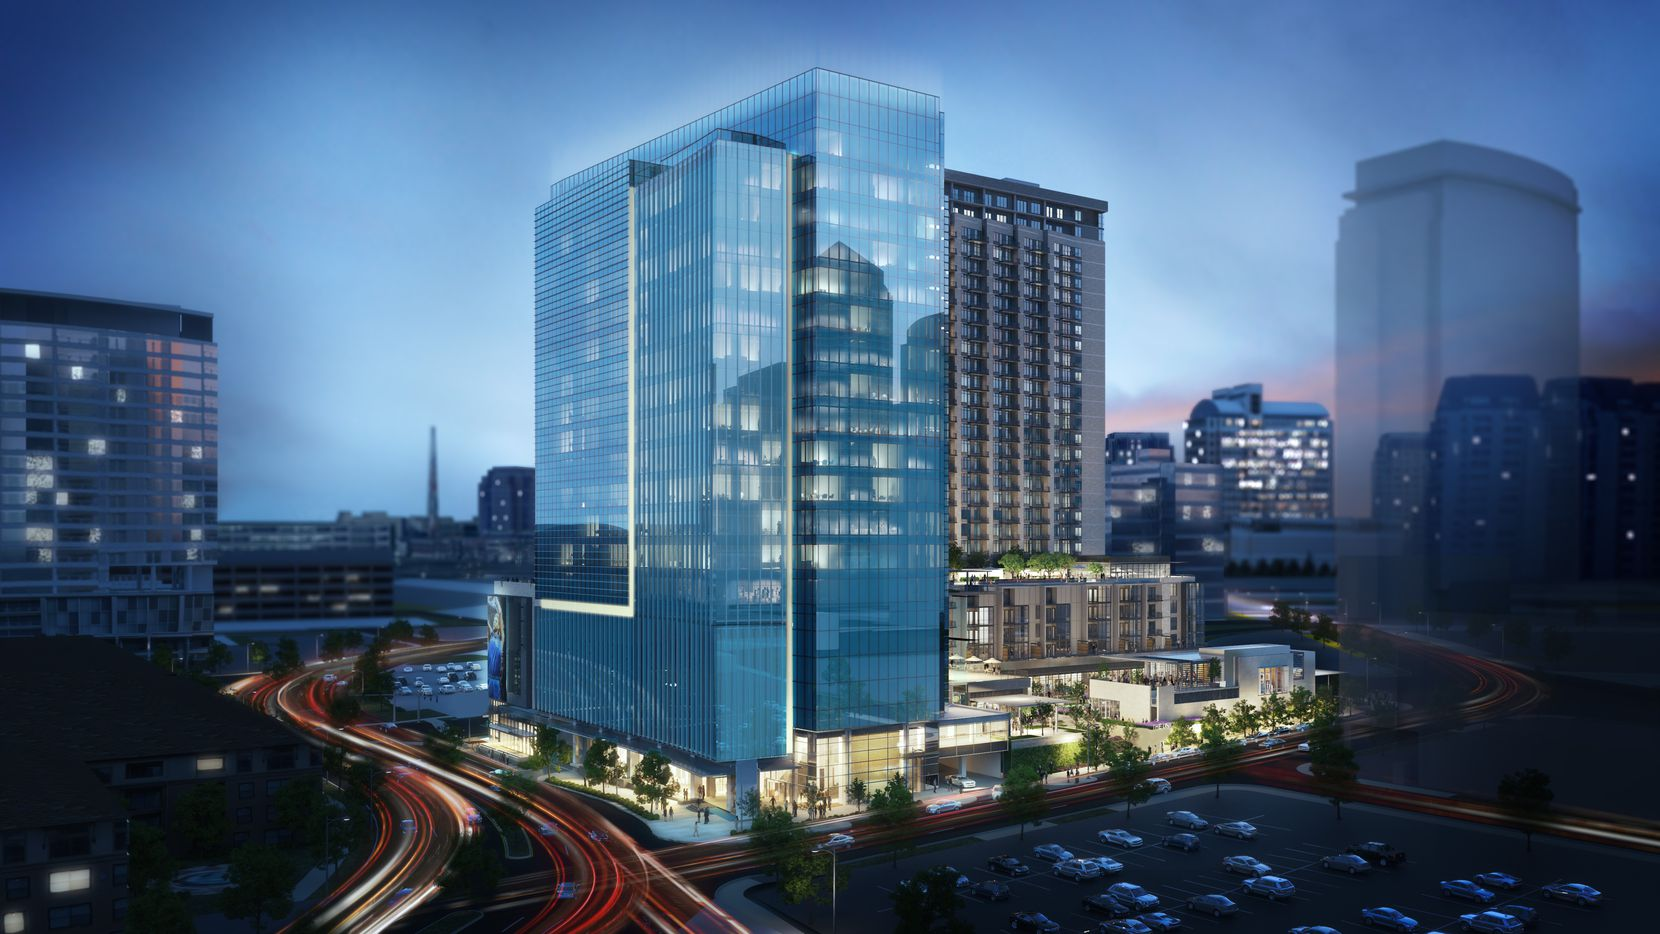 Dallas-based Primoris Services Corp. is moving its headquarters to The Union in Uptown.